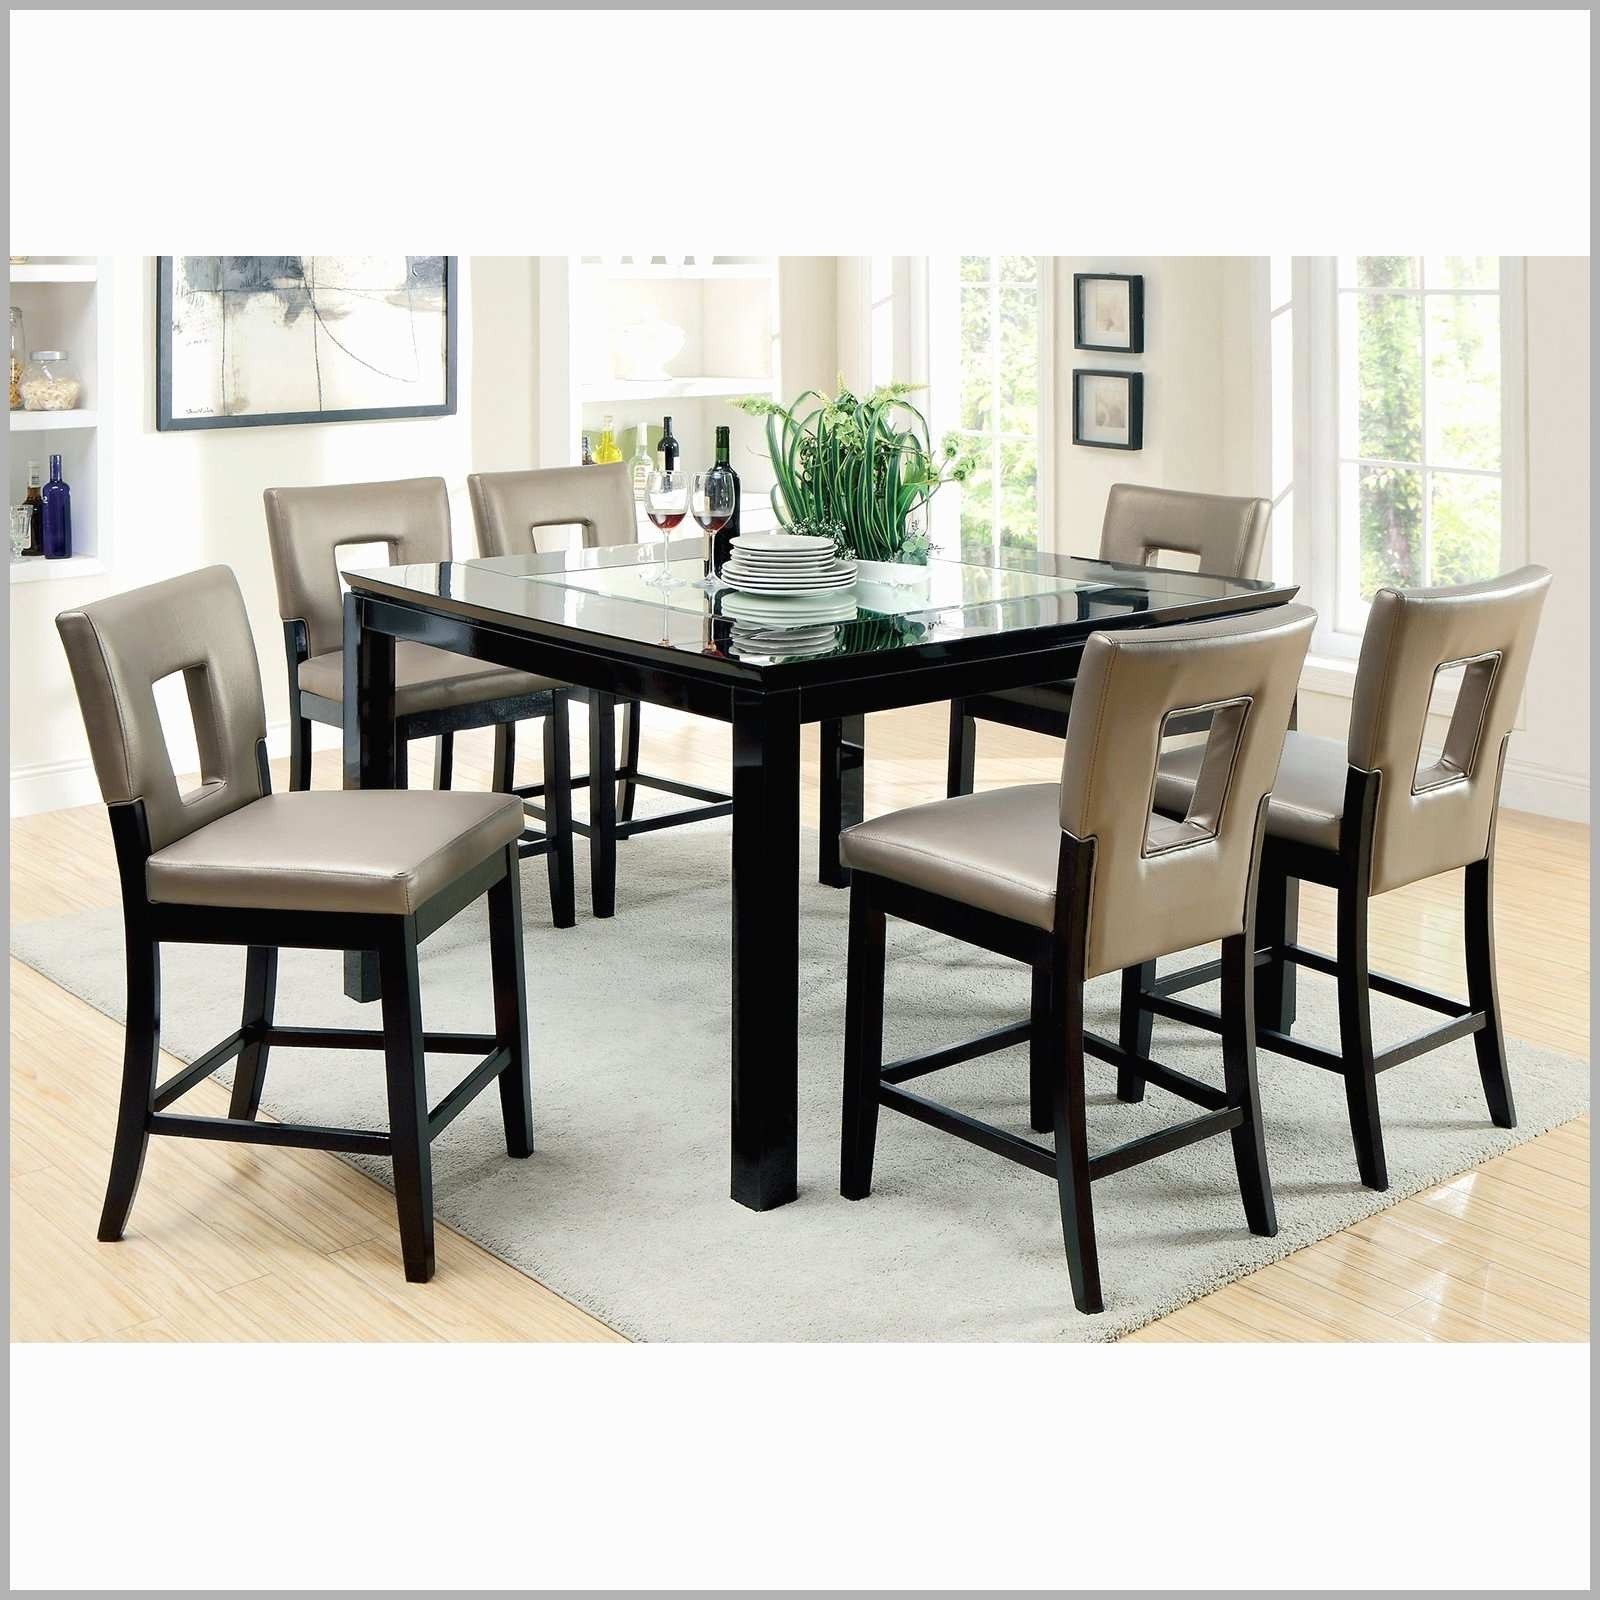 White High Gloss Extending Dining Table Luxury 8 Seater Dining Table Regarding Fashionable Extending Dining Tables And Chairs (View 23 of 25)